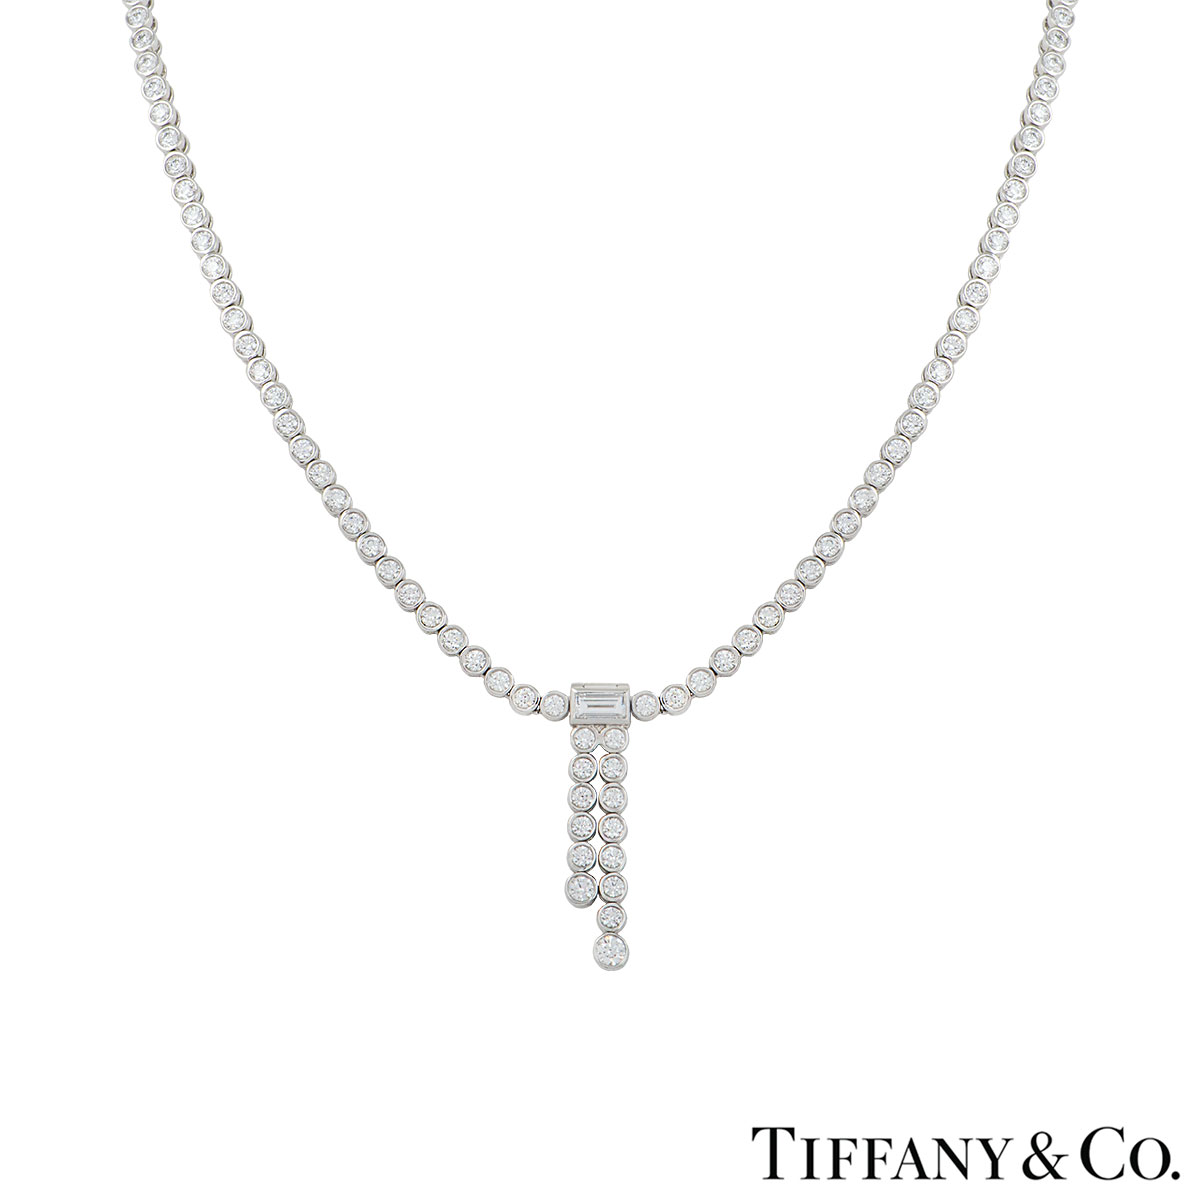 Tiffany & Co. Platinum Diamond Jazz Necklace